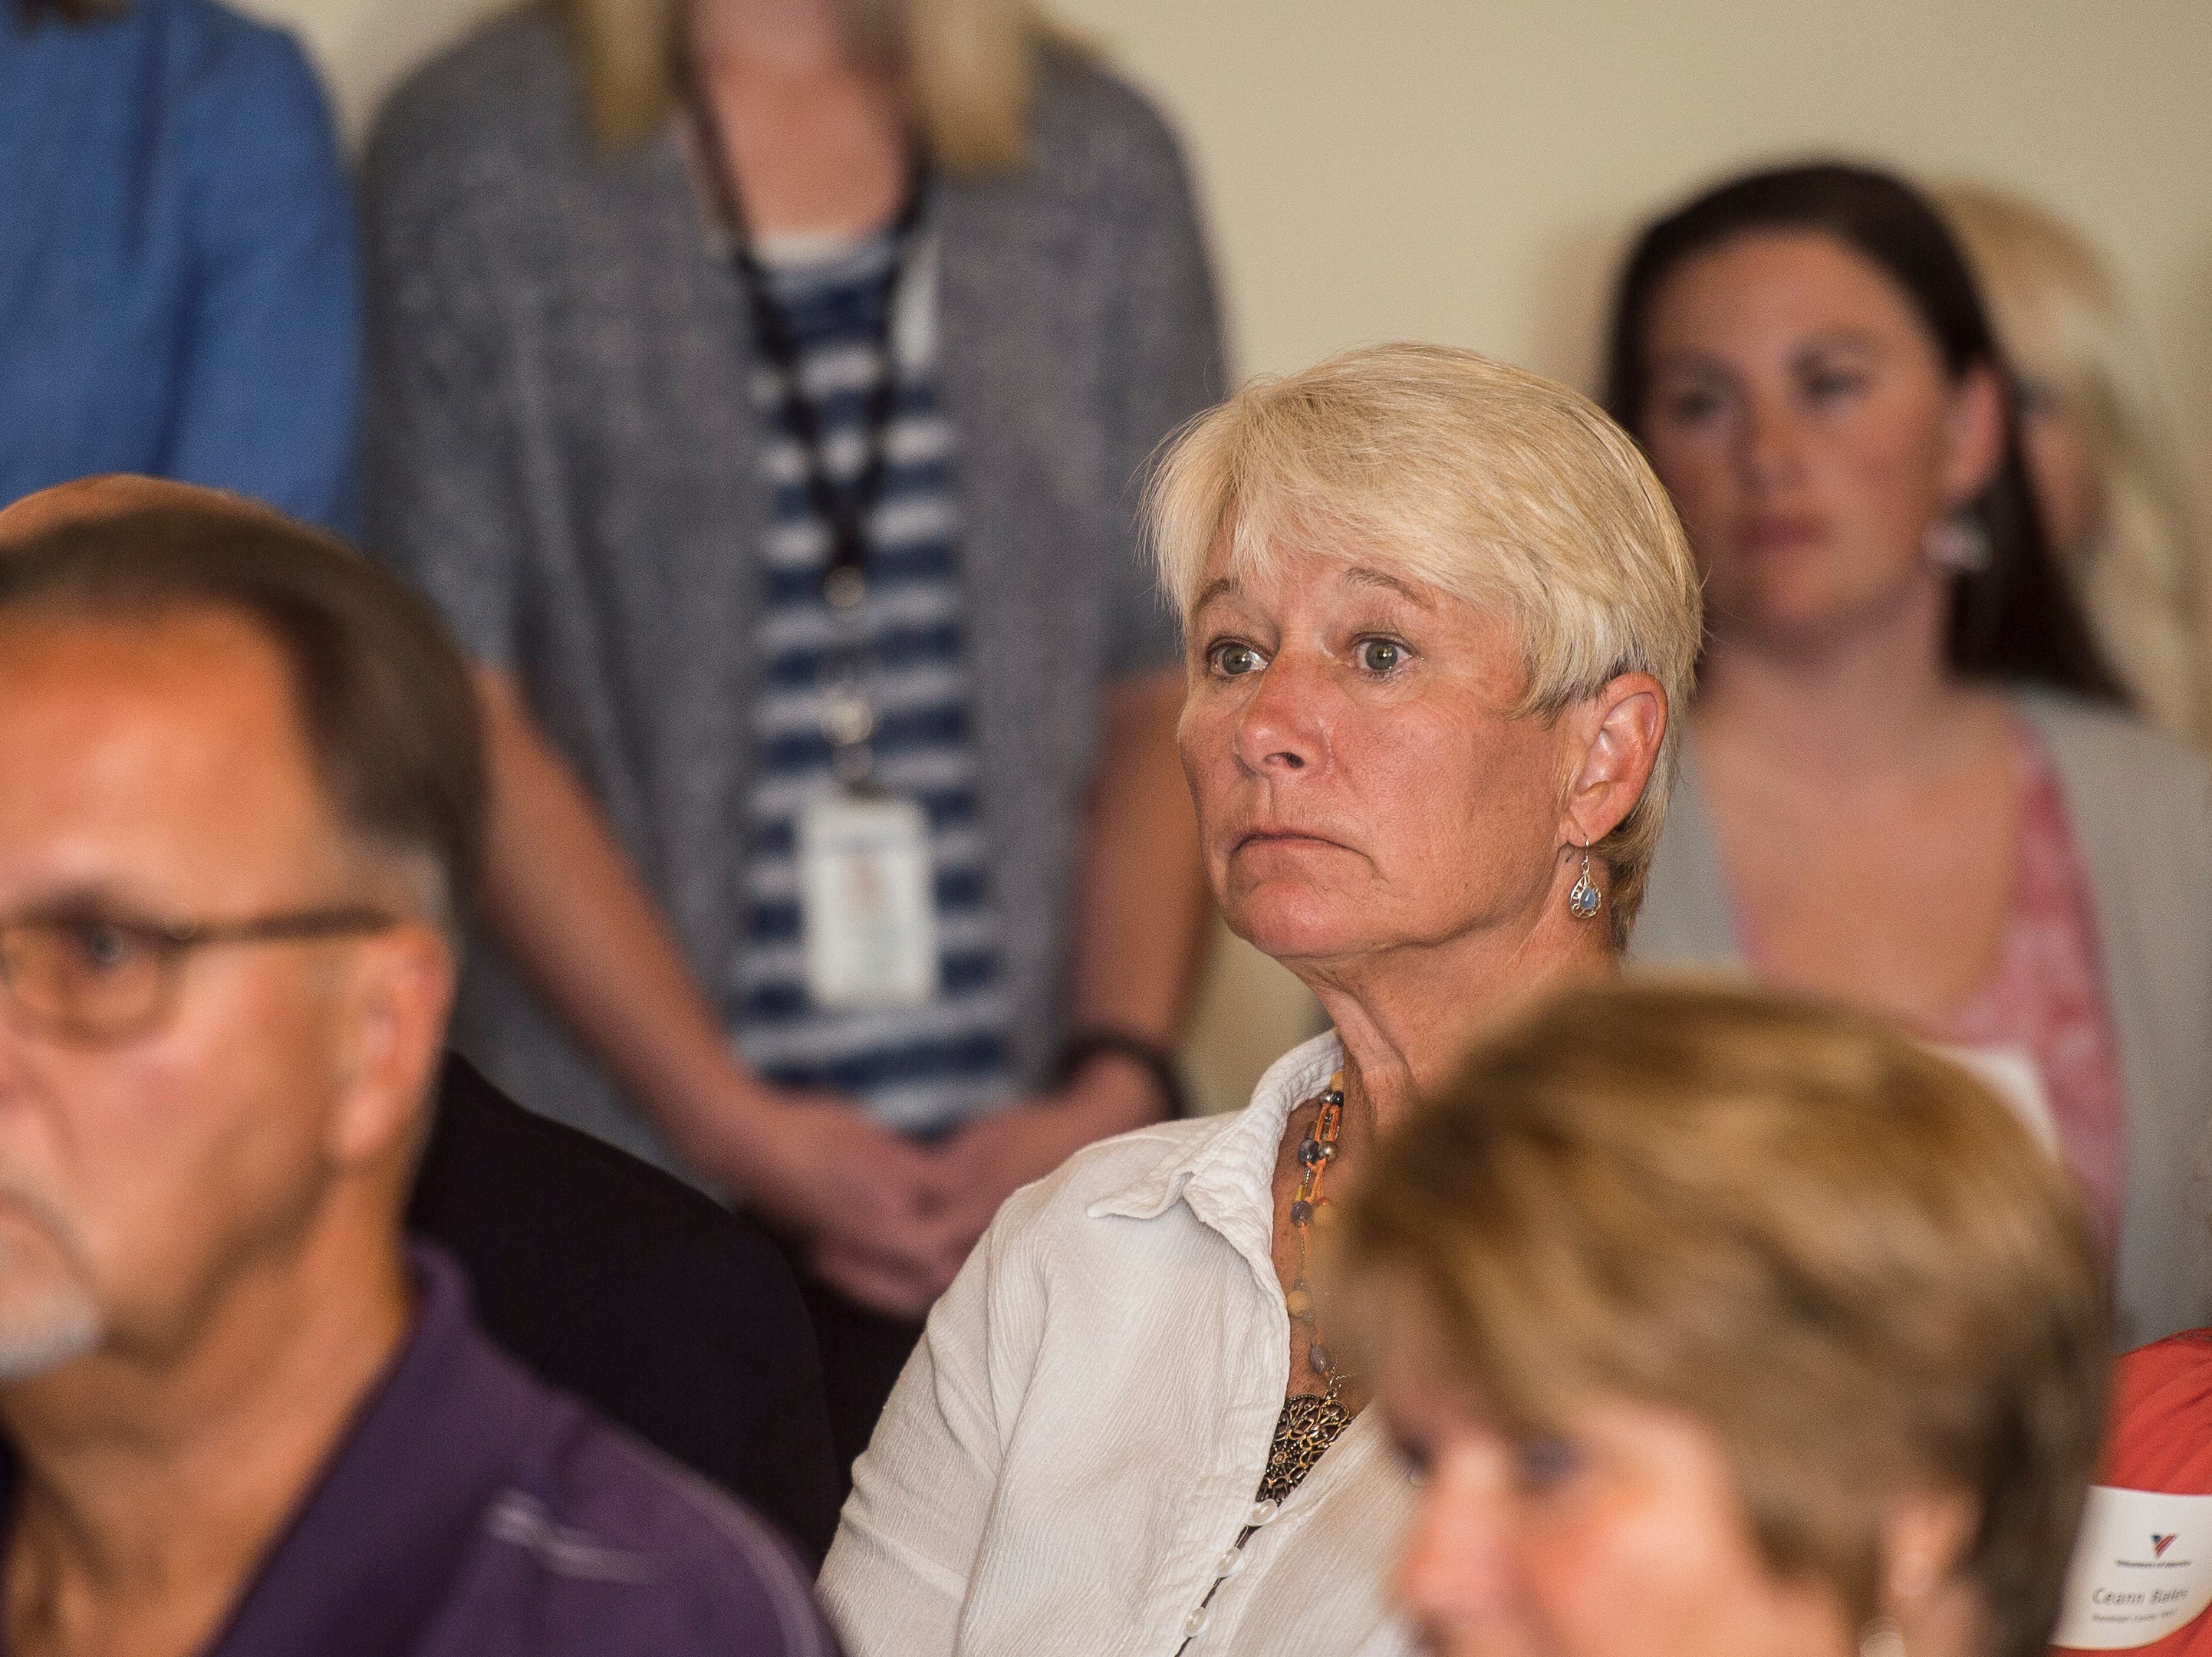 Winchester City Council member Missy Williams listens during a news conference celebrating the opening of the Winchester House, a new drug treatment facility for women, in Winchester, Ind., on Wednesday, Aug. 1, 2018.